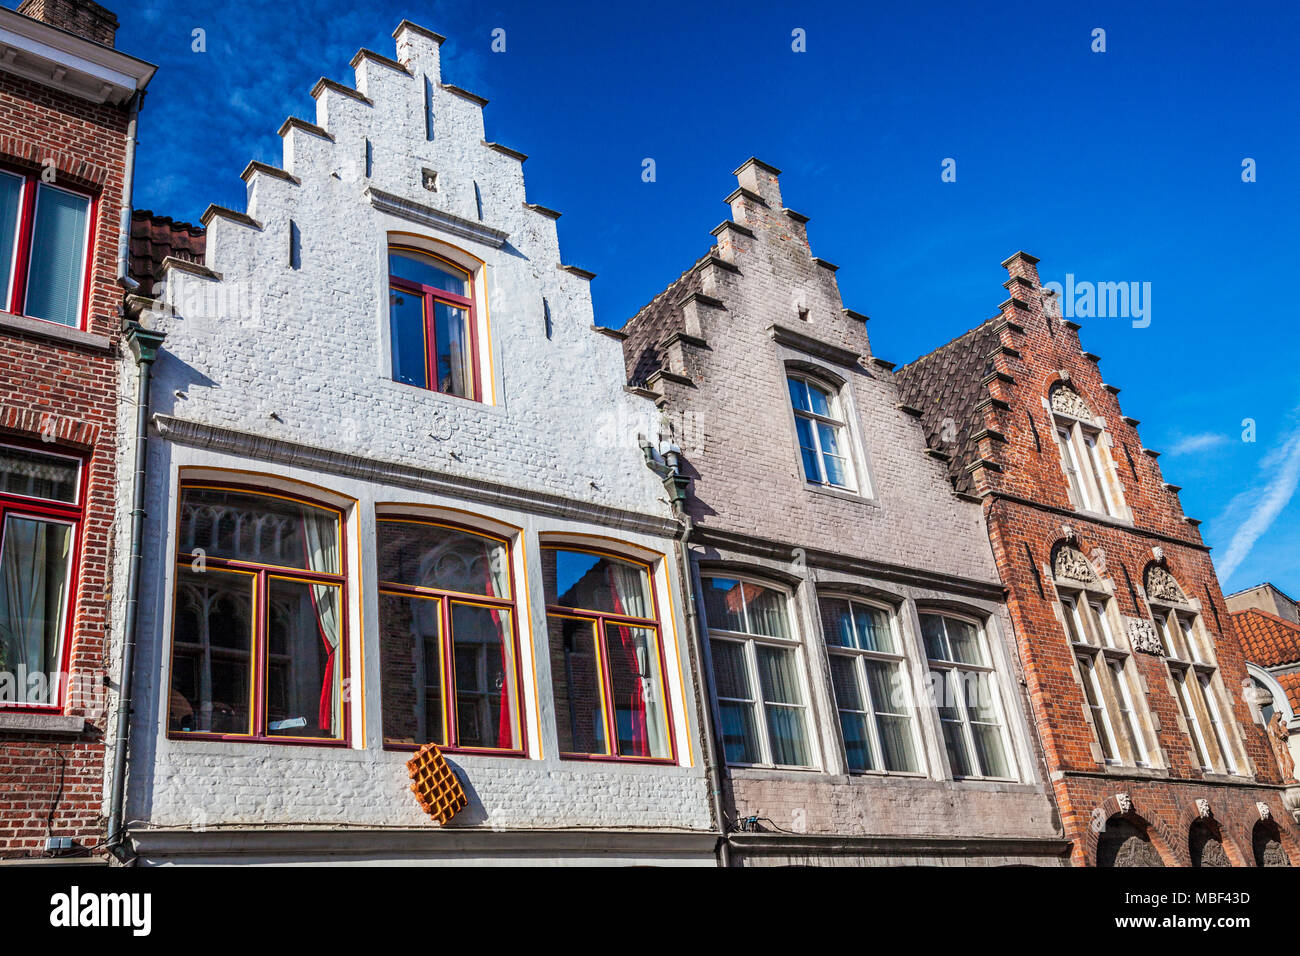 Historic patrician houses along the Langerei in Bruges (Brugge), Belgium. - Stock Image